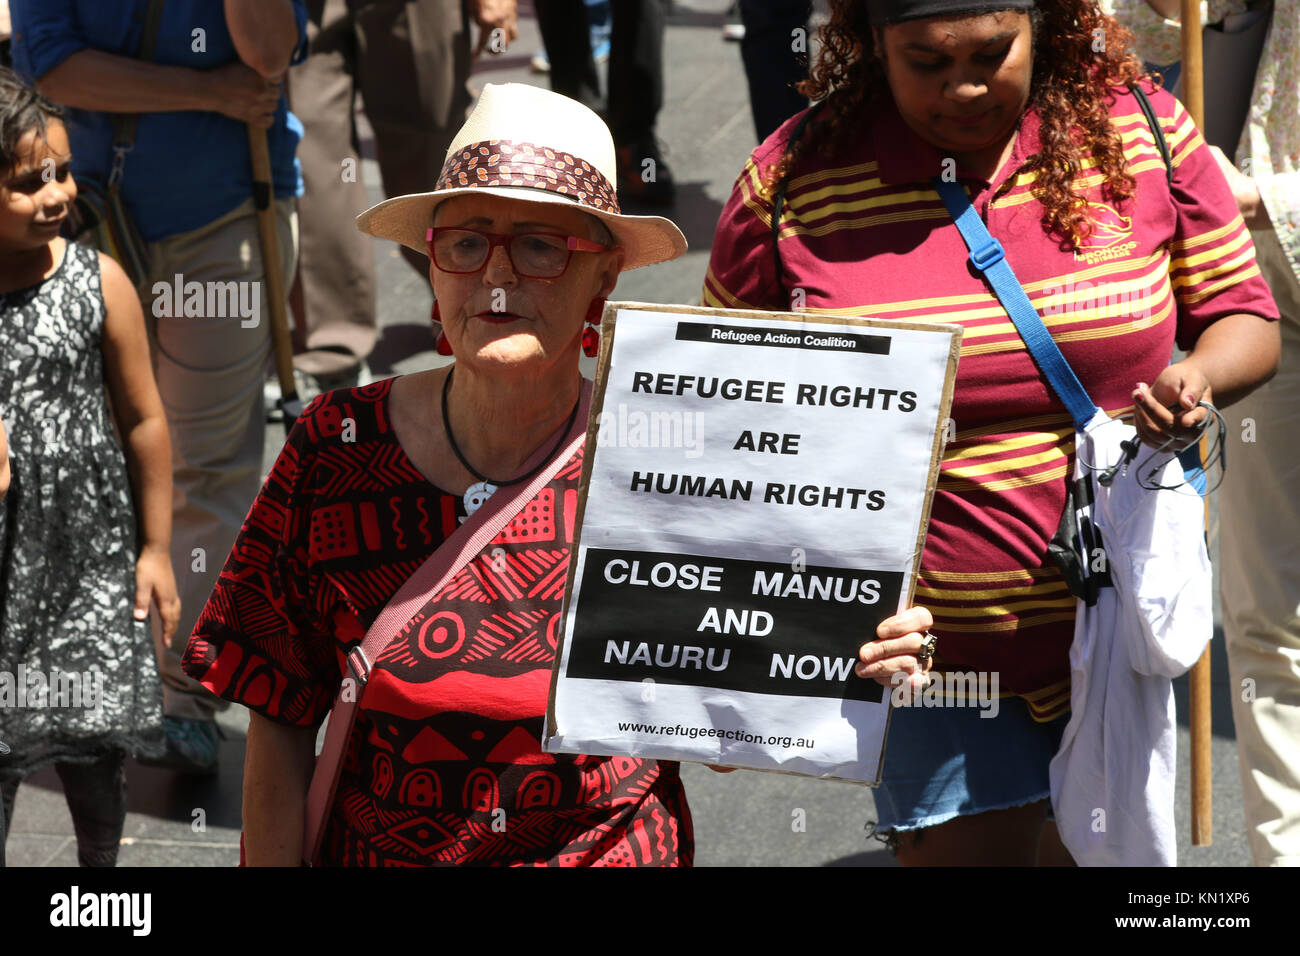 Sydney, Australia. 10 December 2017. On International Human Rights Day protesters gathered at Sydney Town Hall before - Stock Image